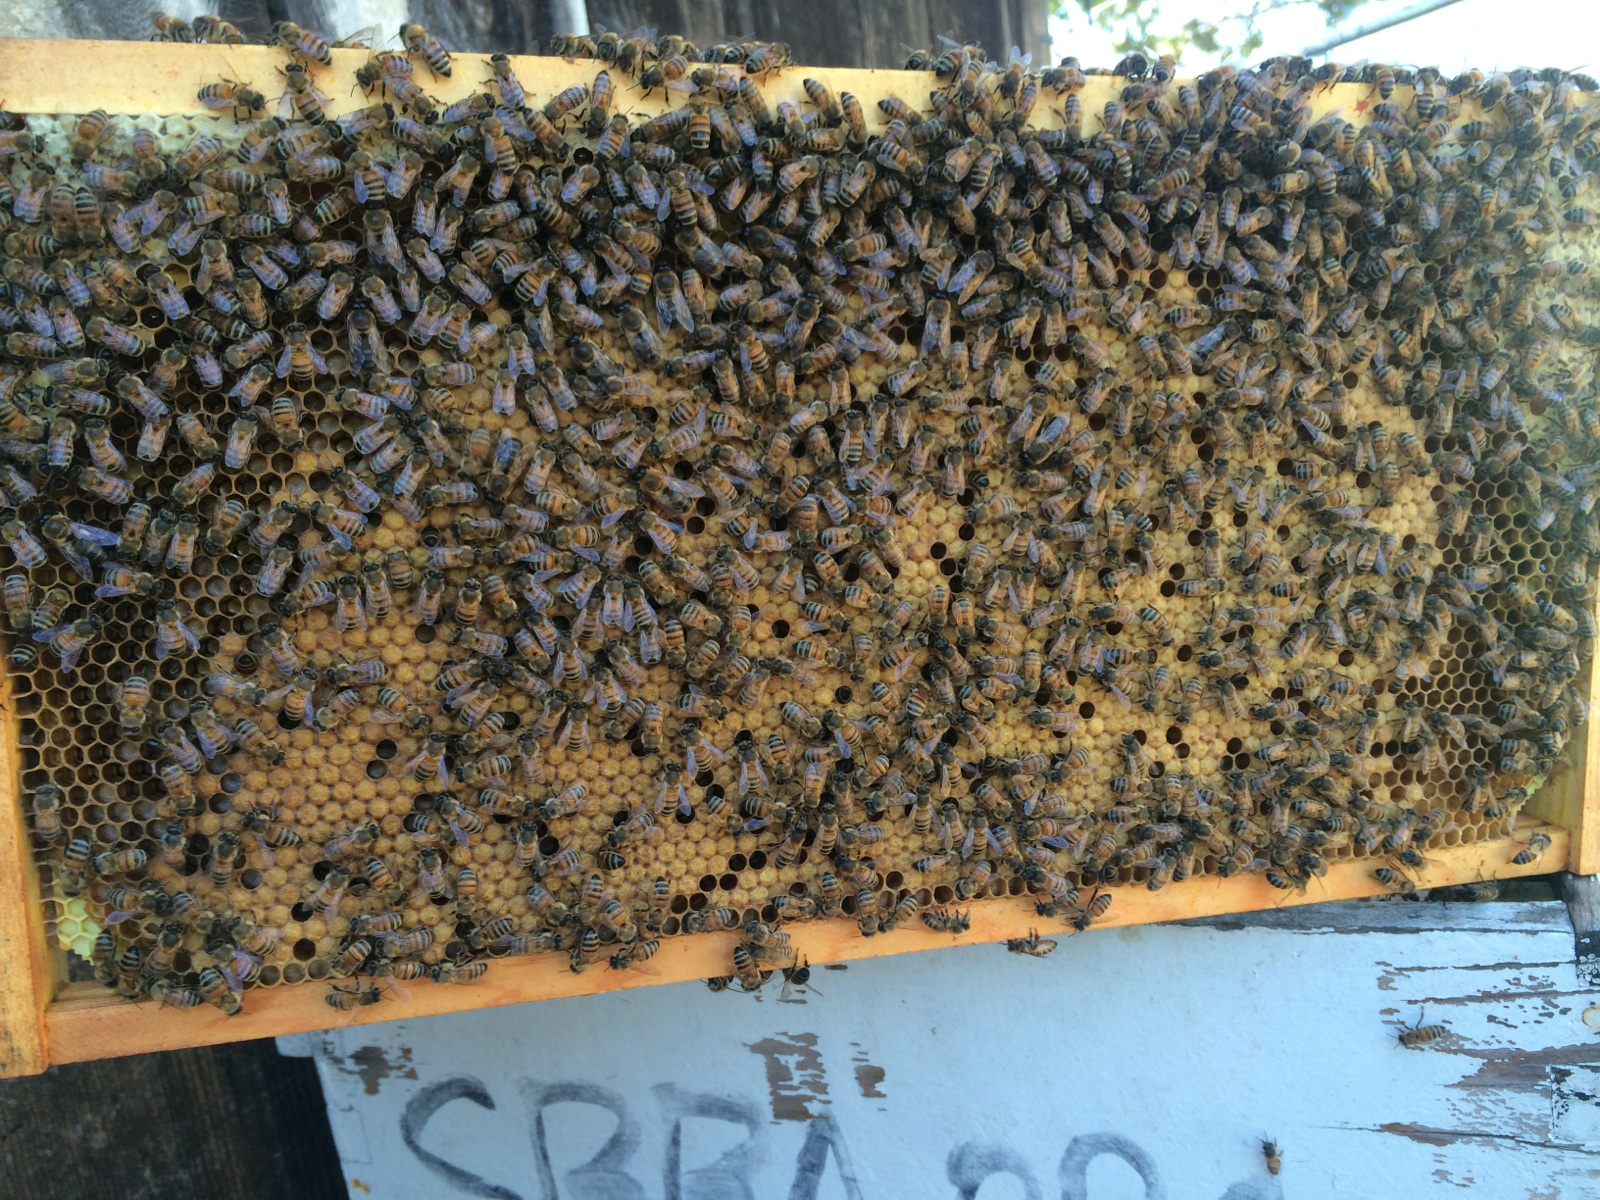 Impressive Brood Pattern for a Nuc